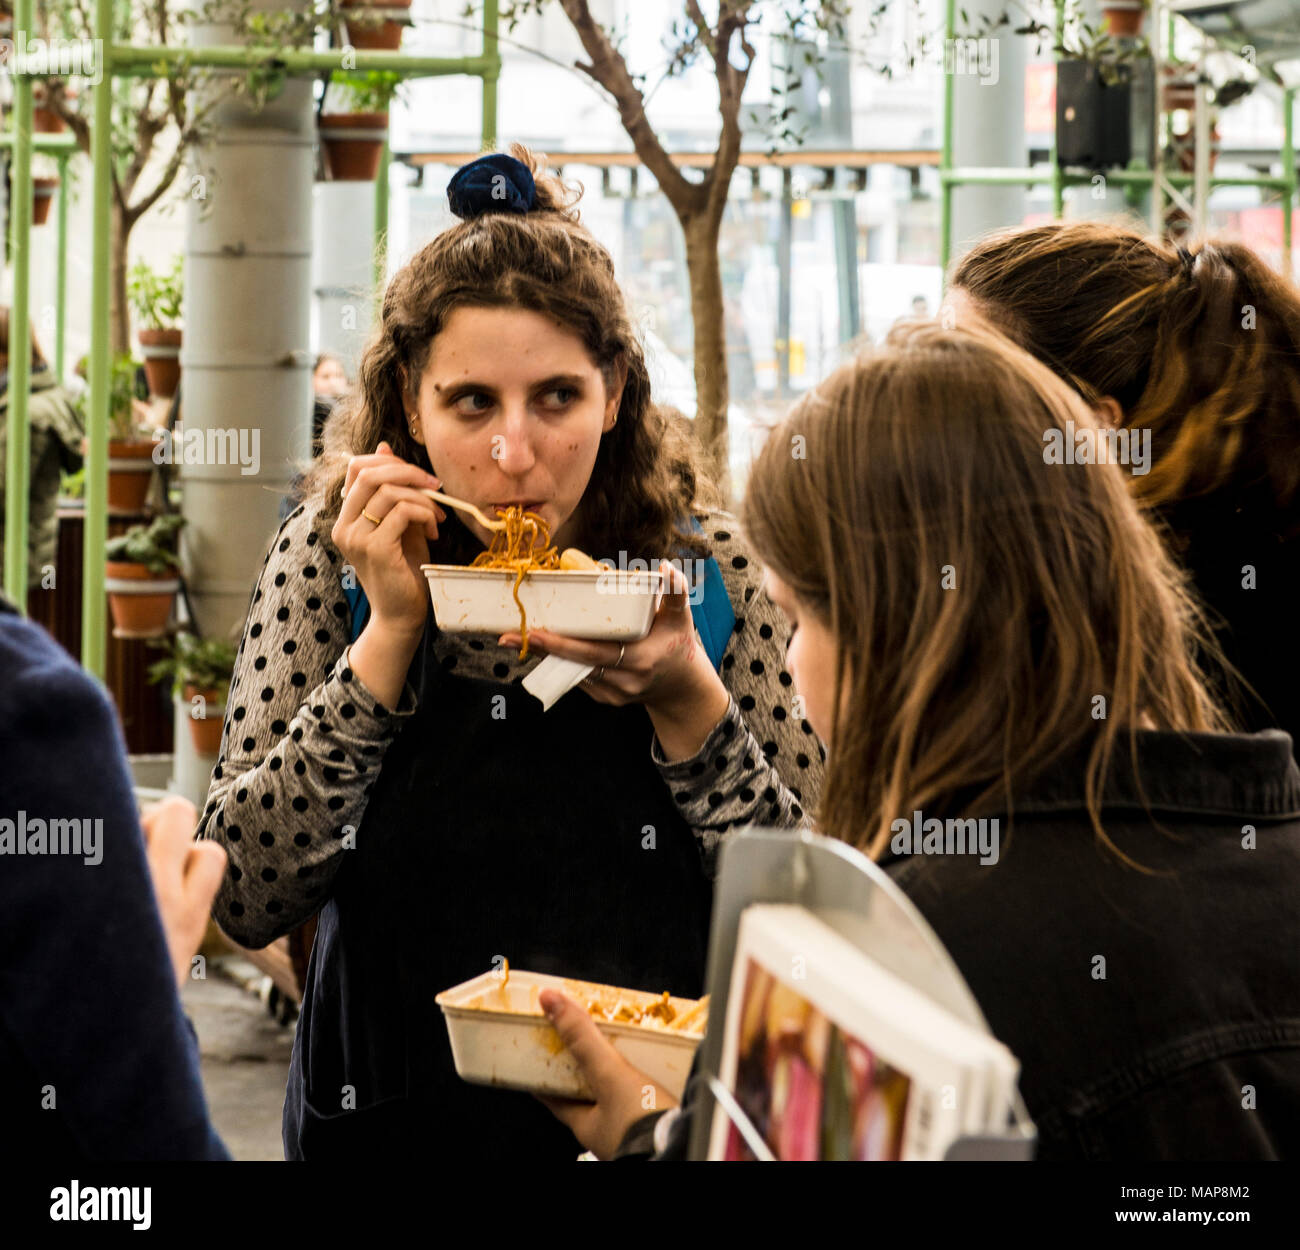 Woman eating noodles from container, Borough Market, Southwark, London, England, UK - Stock Image